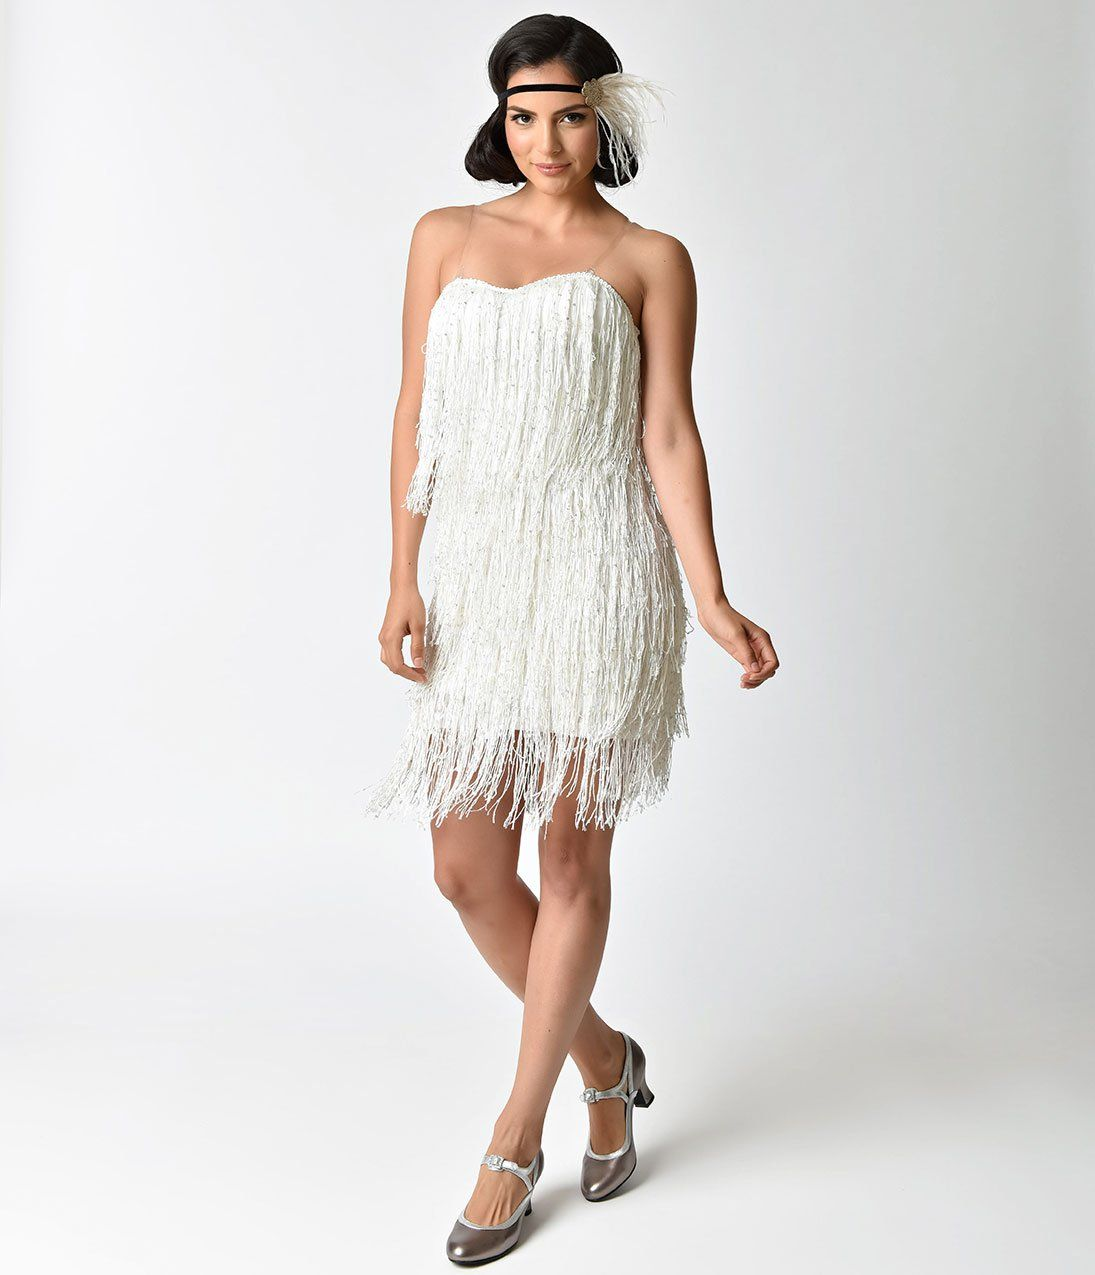 8928cc87fc1 1920s Style White   Iridescent Sequin   Fringe Flapper Dress – Unique  Vintage